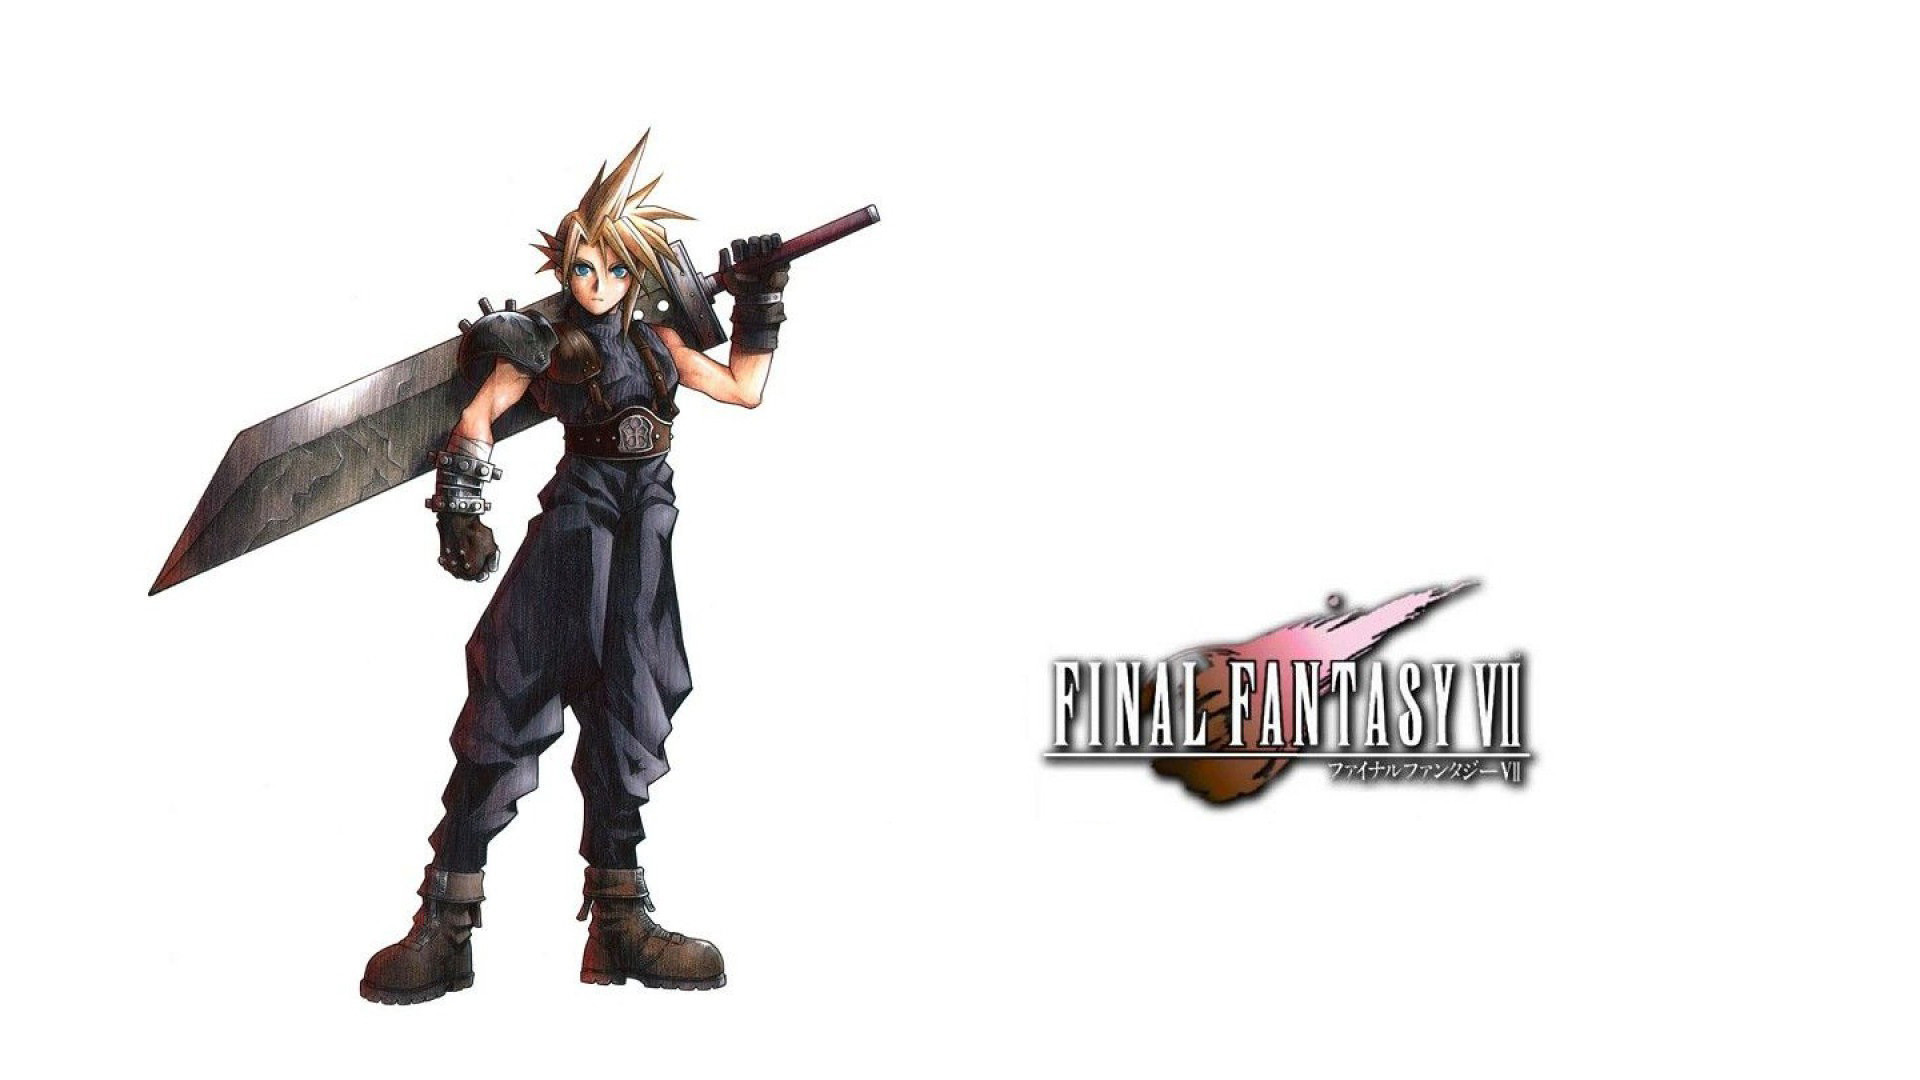 1920x1080 Final Fantasy 7 Cloud Wallpaper